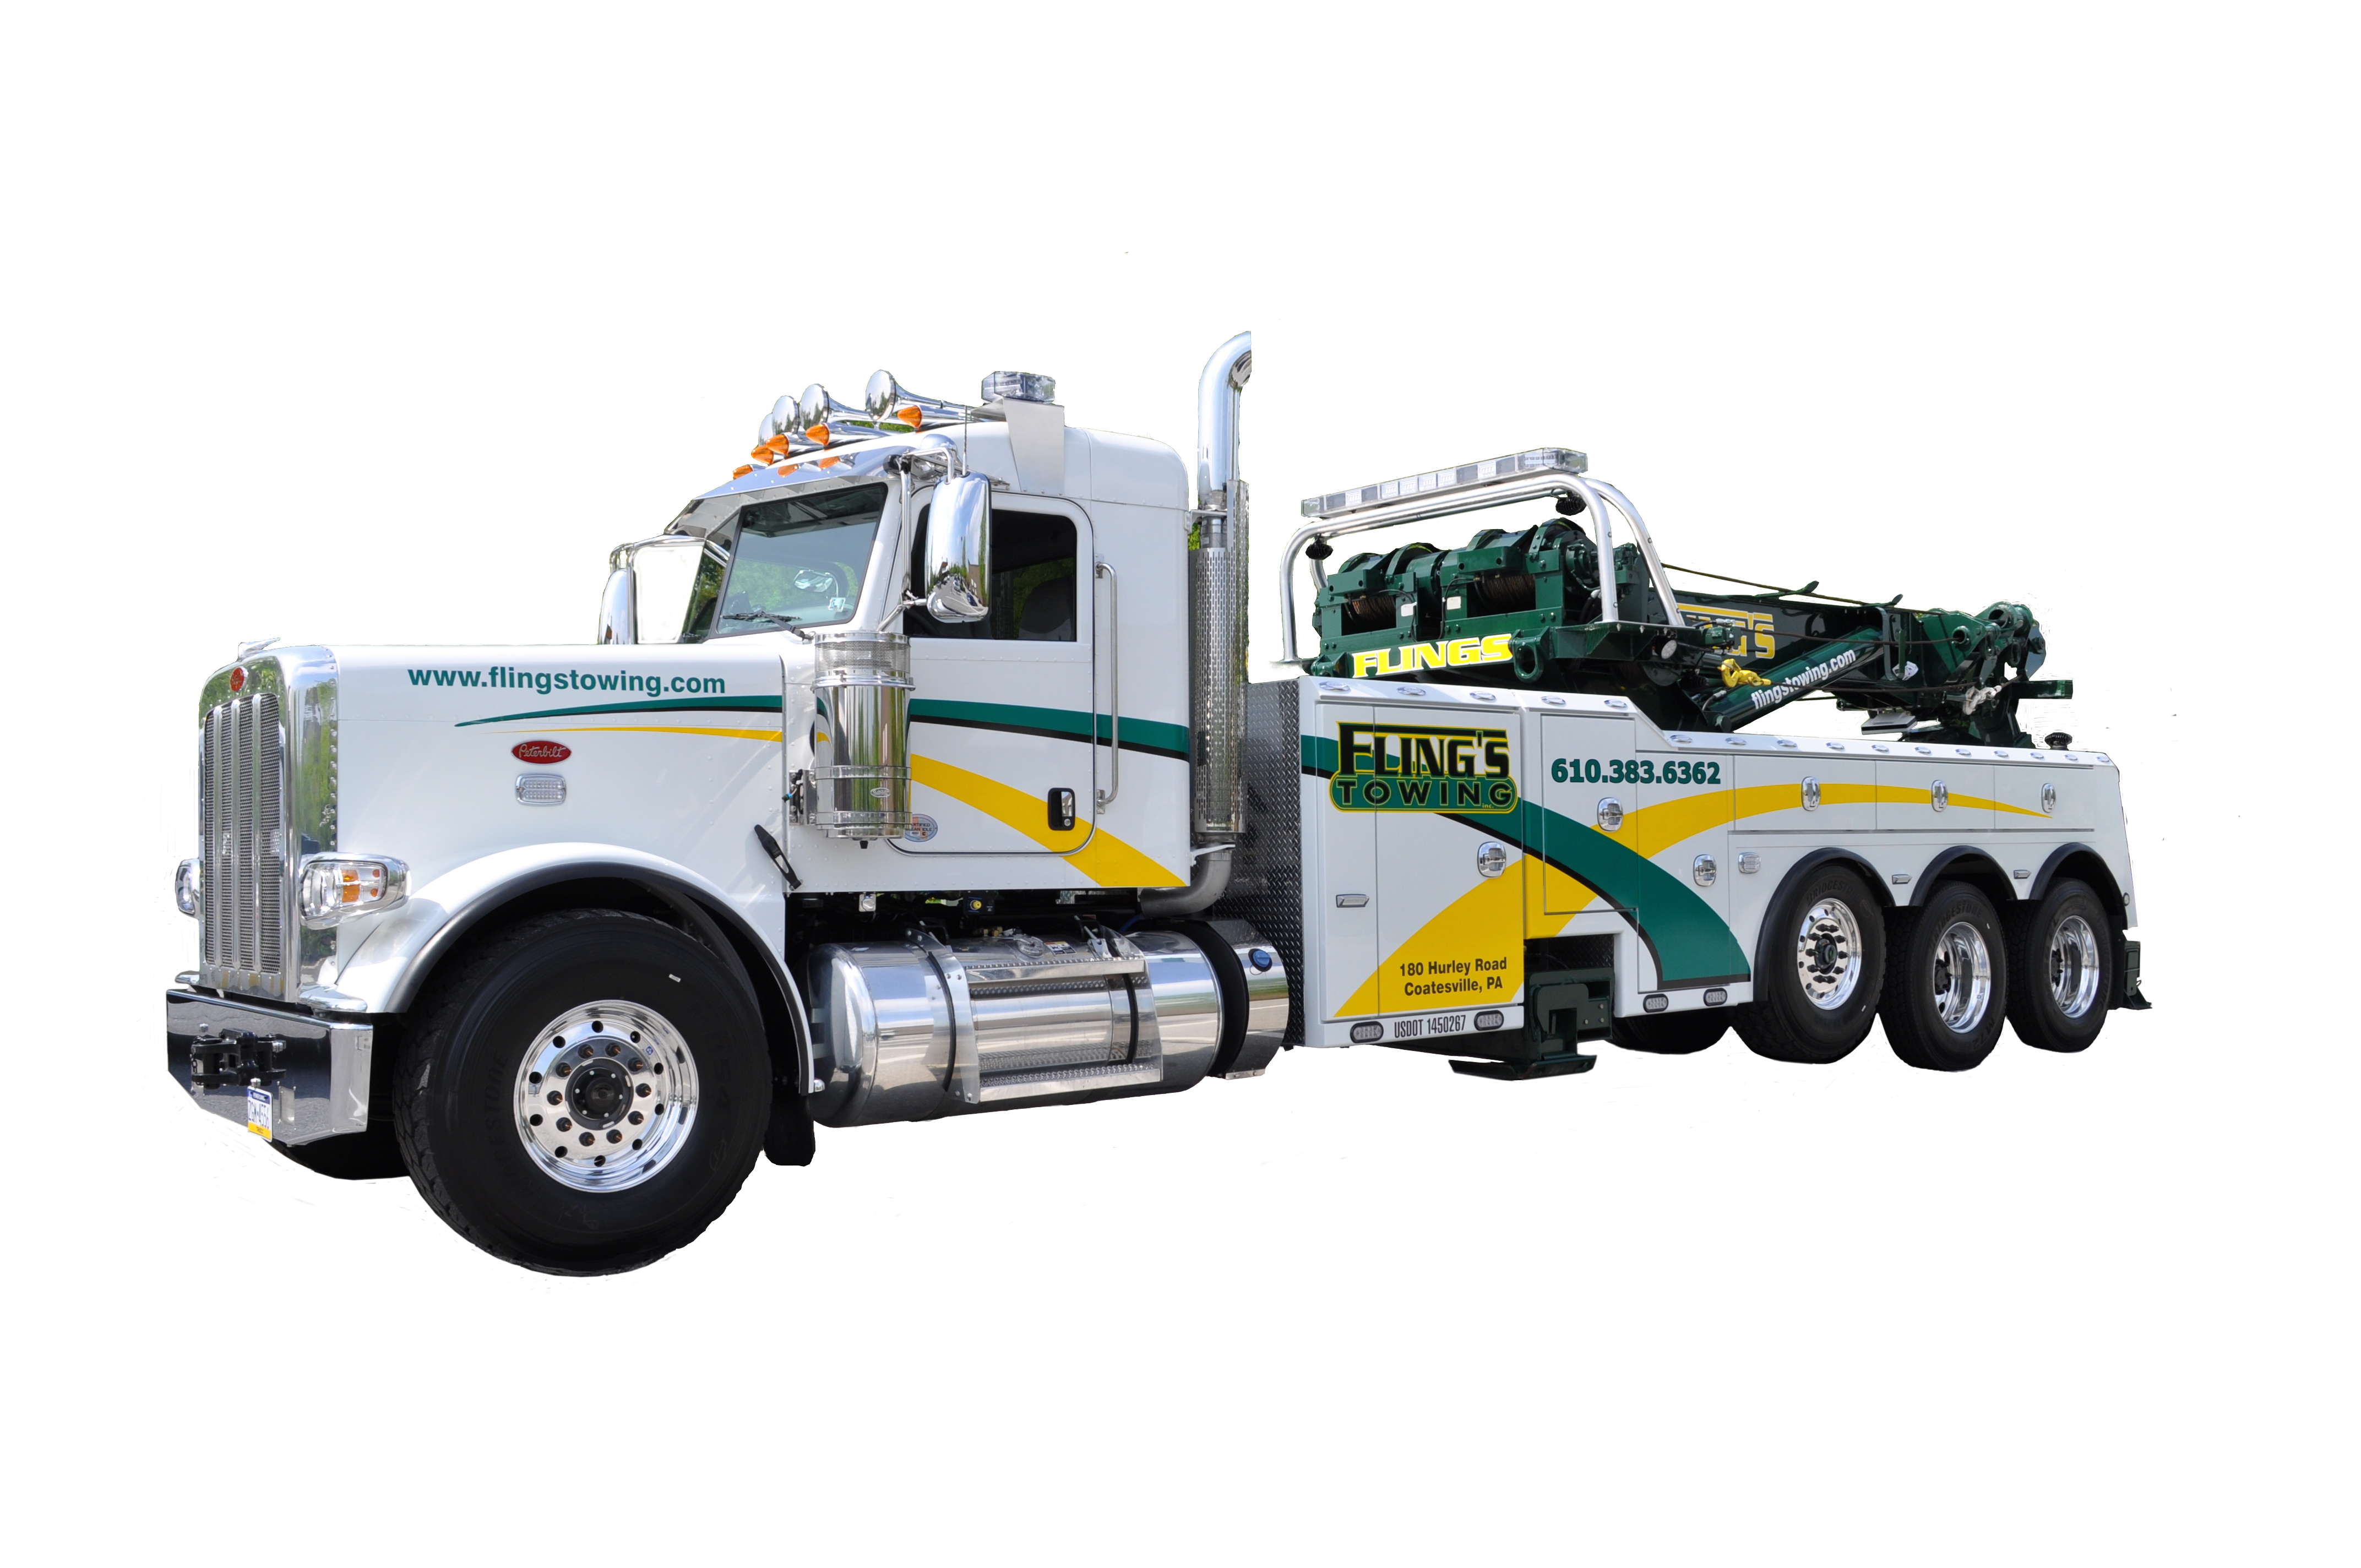 Fling\'s Towing Inc 180 Hurley Rd, Coatesville, PA 19320 - YP.com